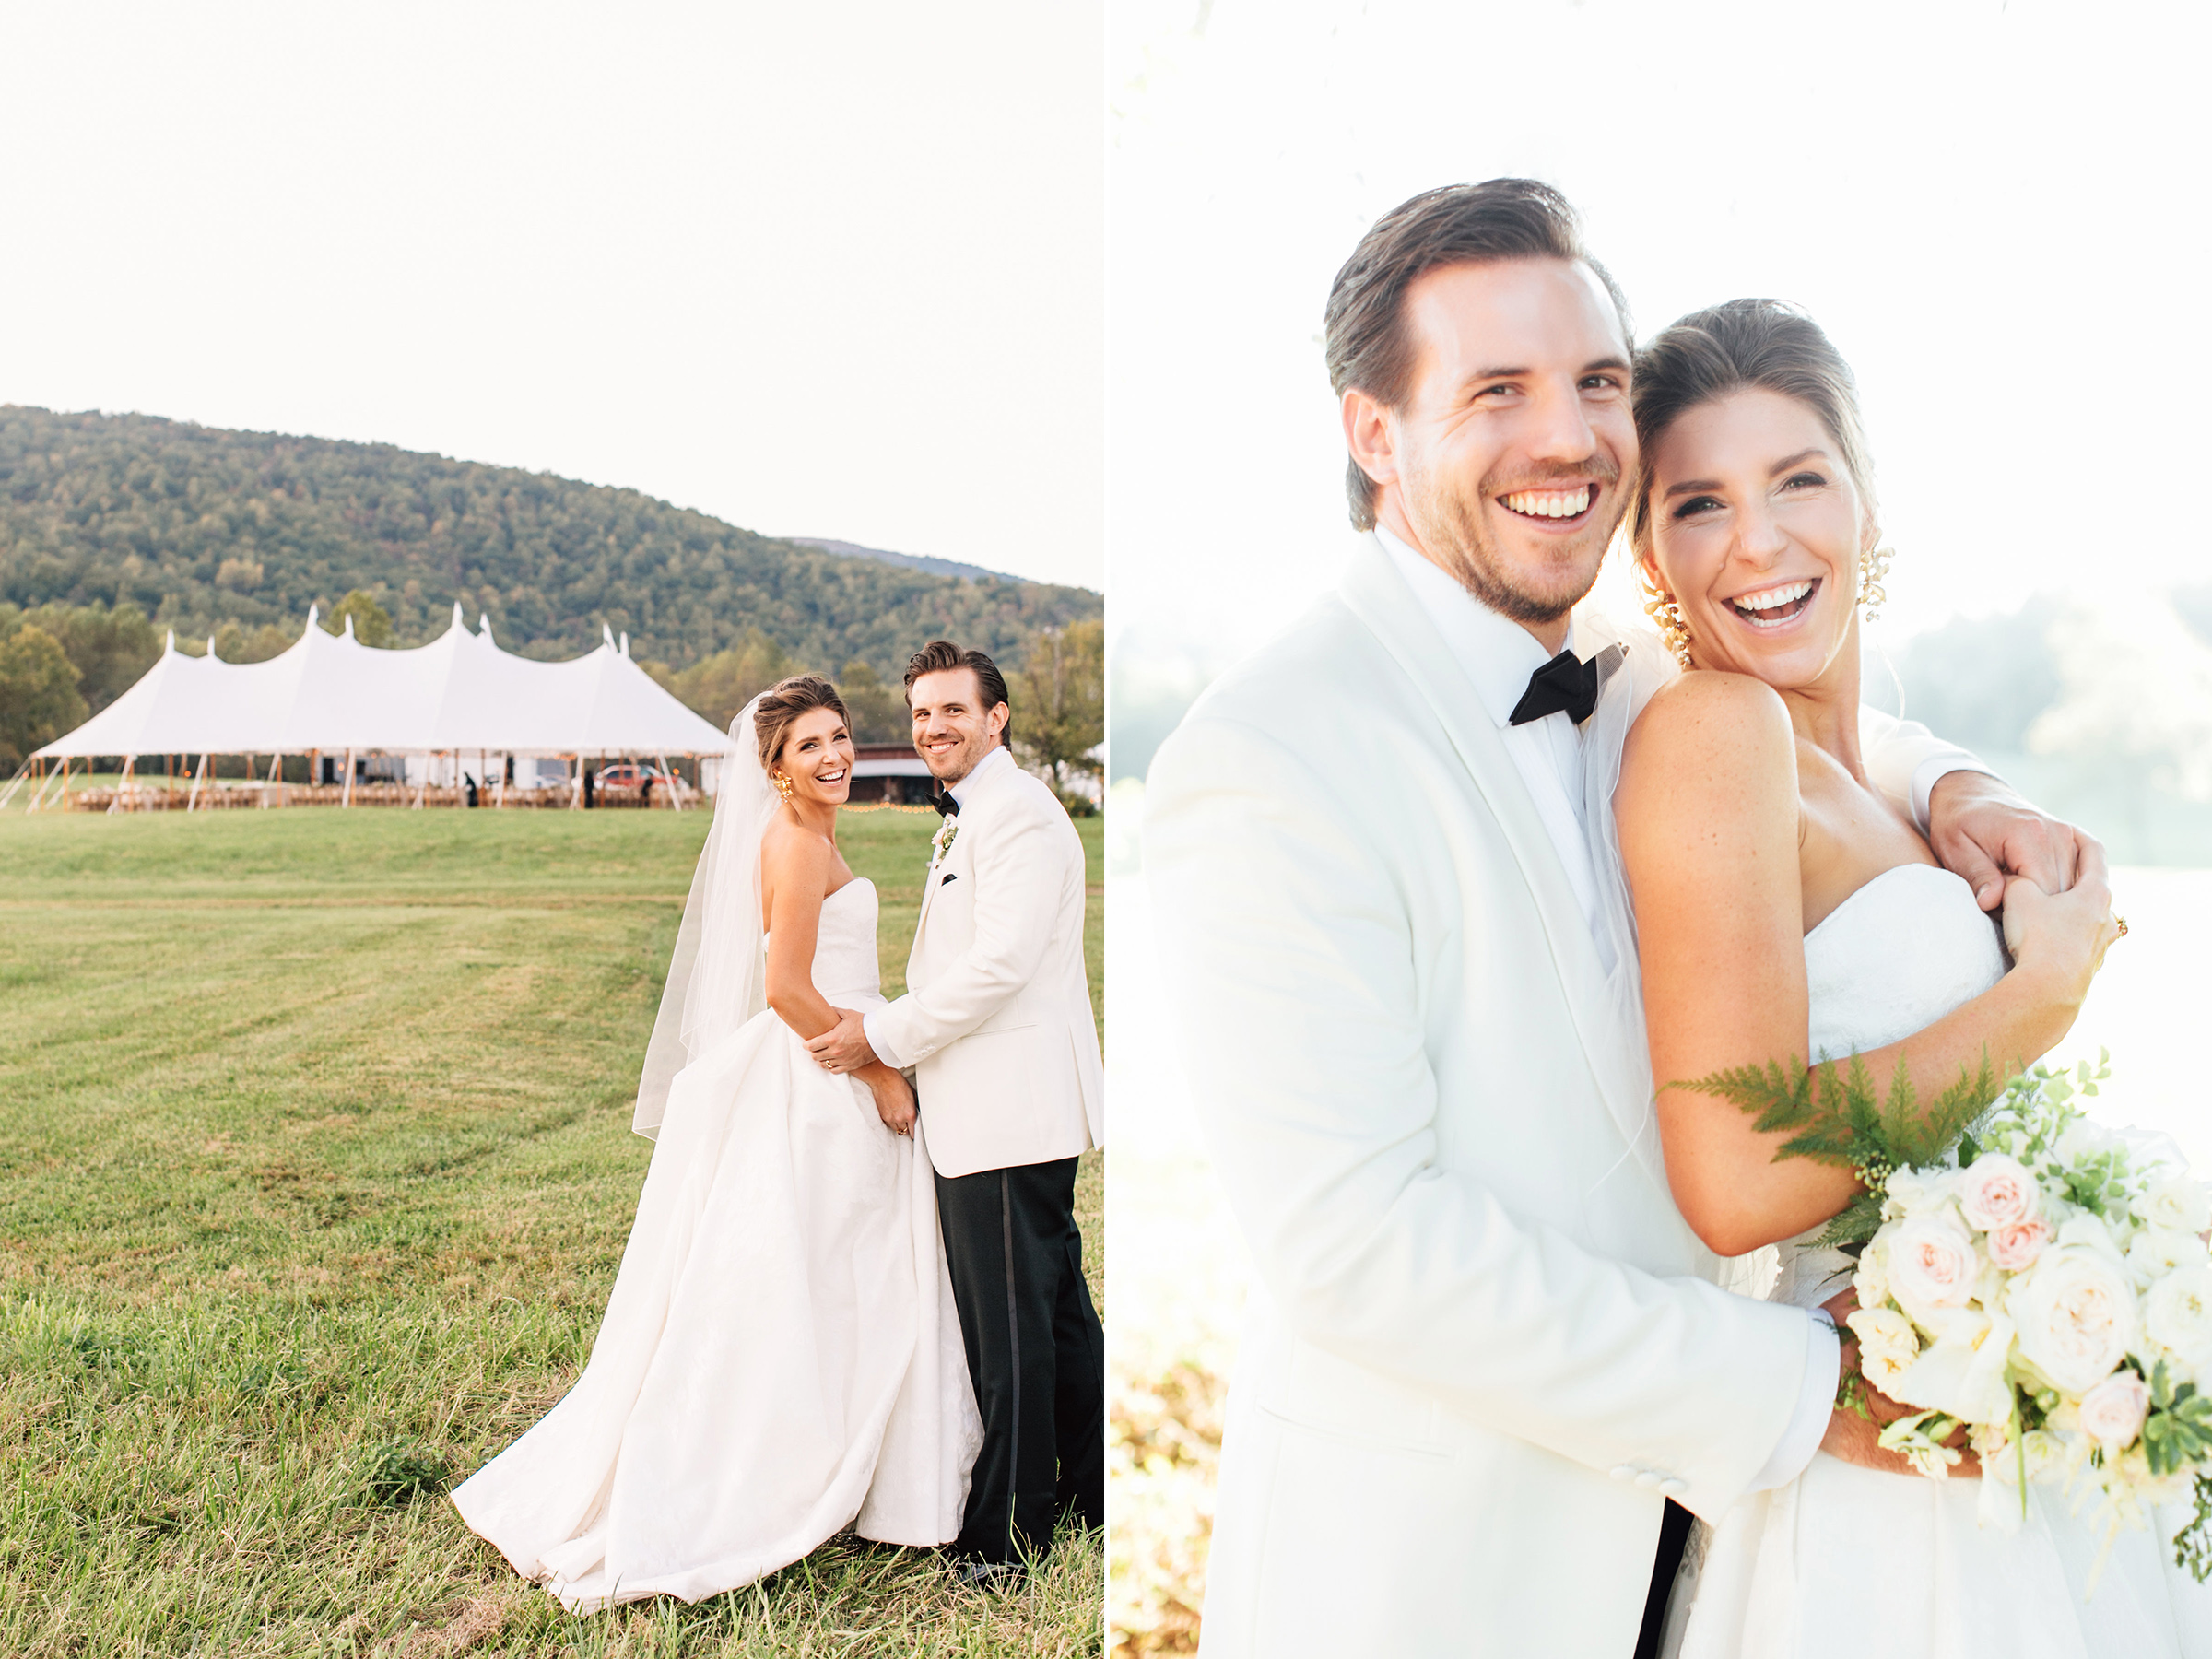 KatieStoopsPhotography-charlottesville wedding-farm wedding35.jpg